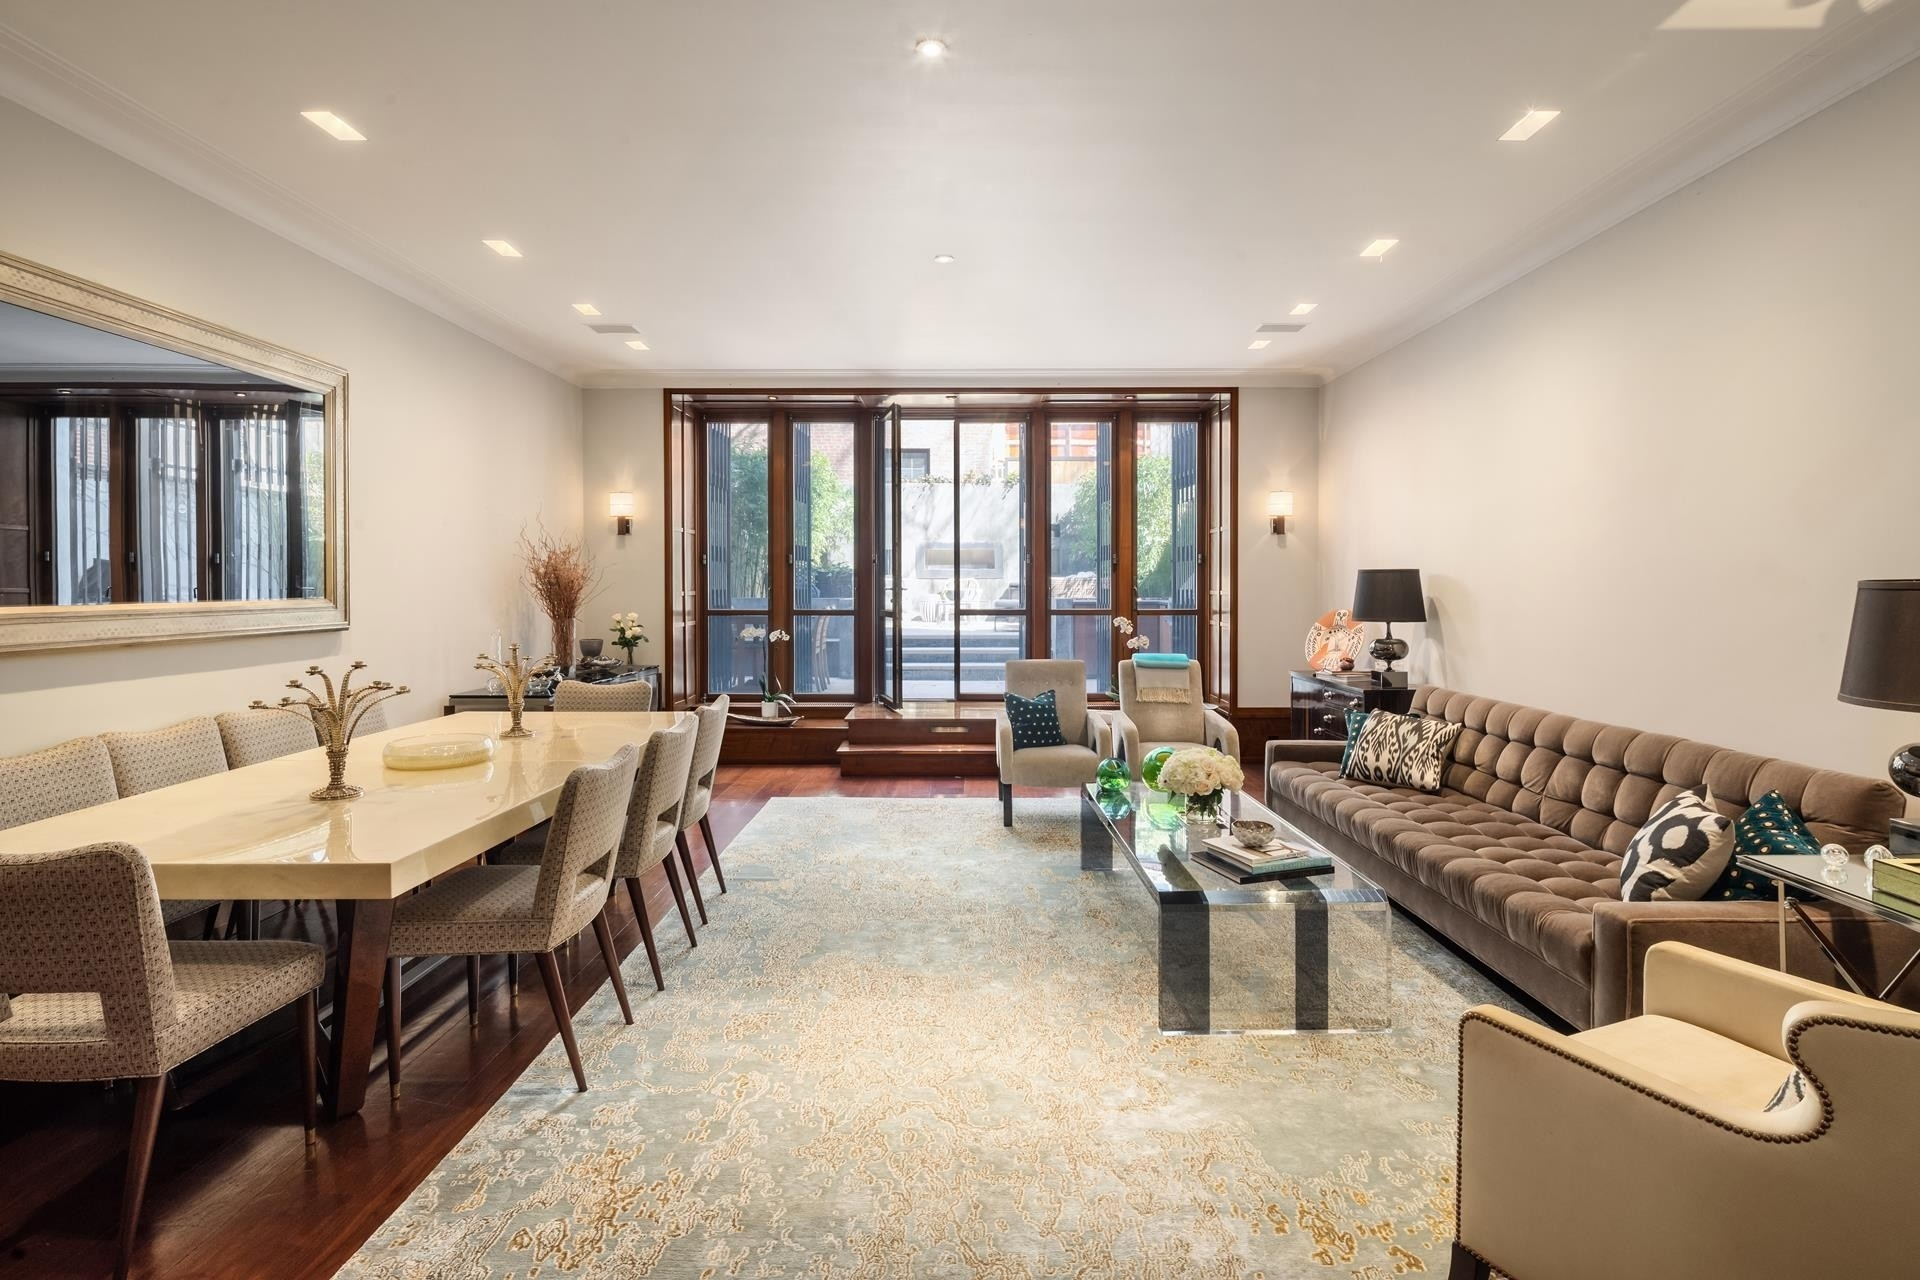 6. Single Family Townhouse 為 特賣 在 159 E 61ST ST , TOWNHOUSE Lenox Hill, 纽约, NY 10065